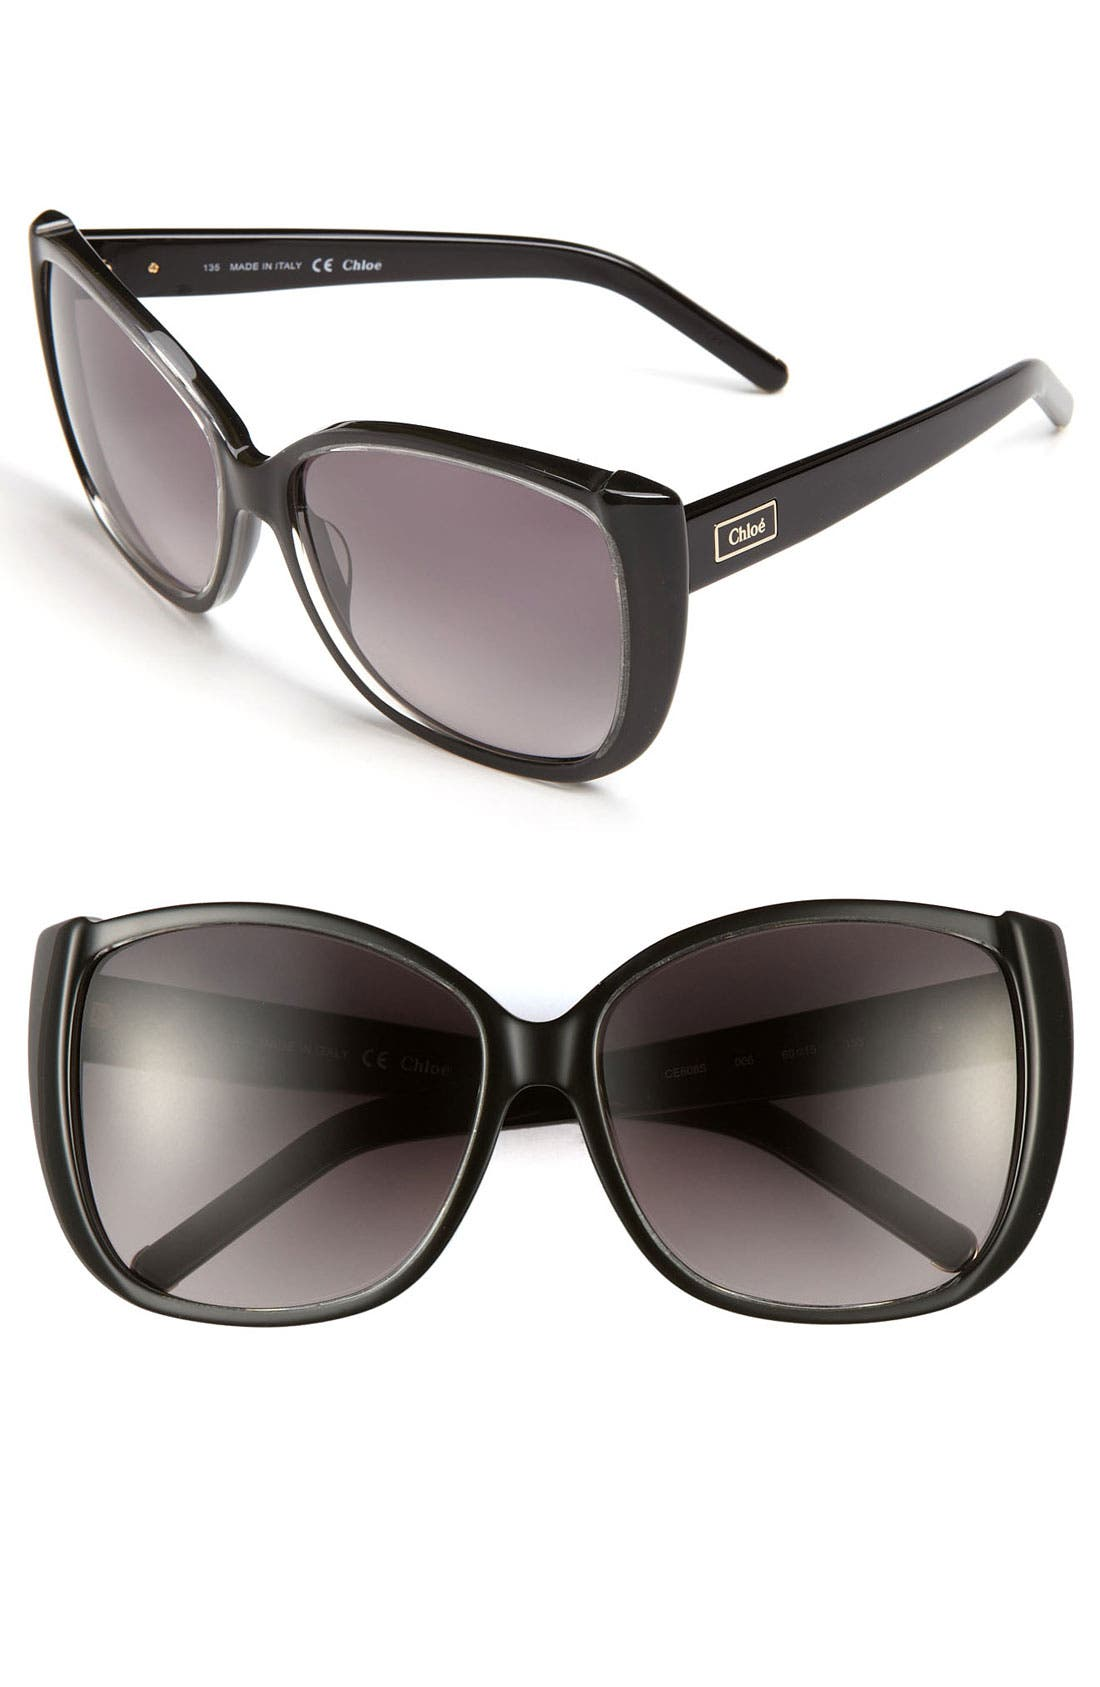 Main Image - Chloé 60mm Oversized Sunglasses